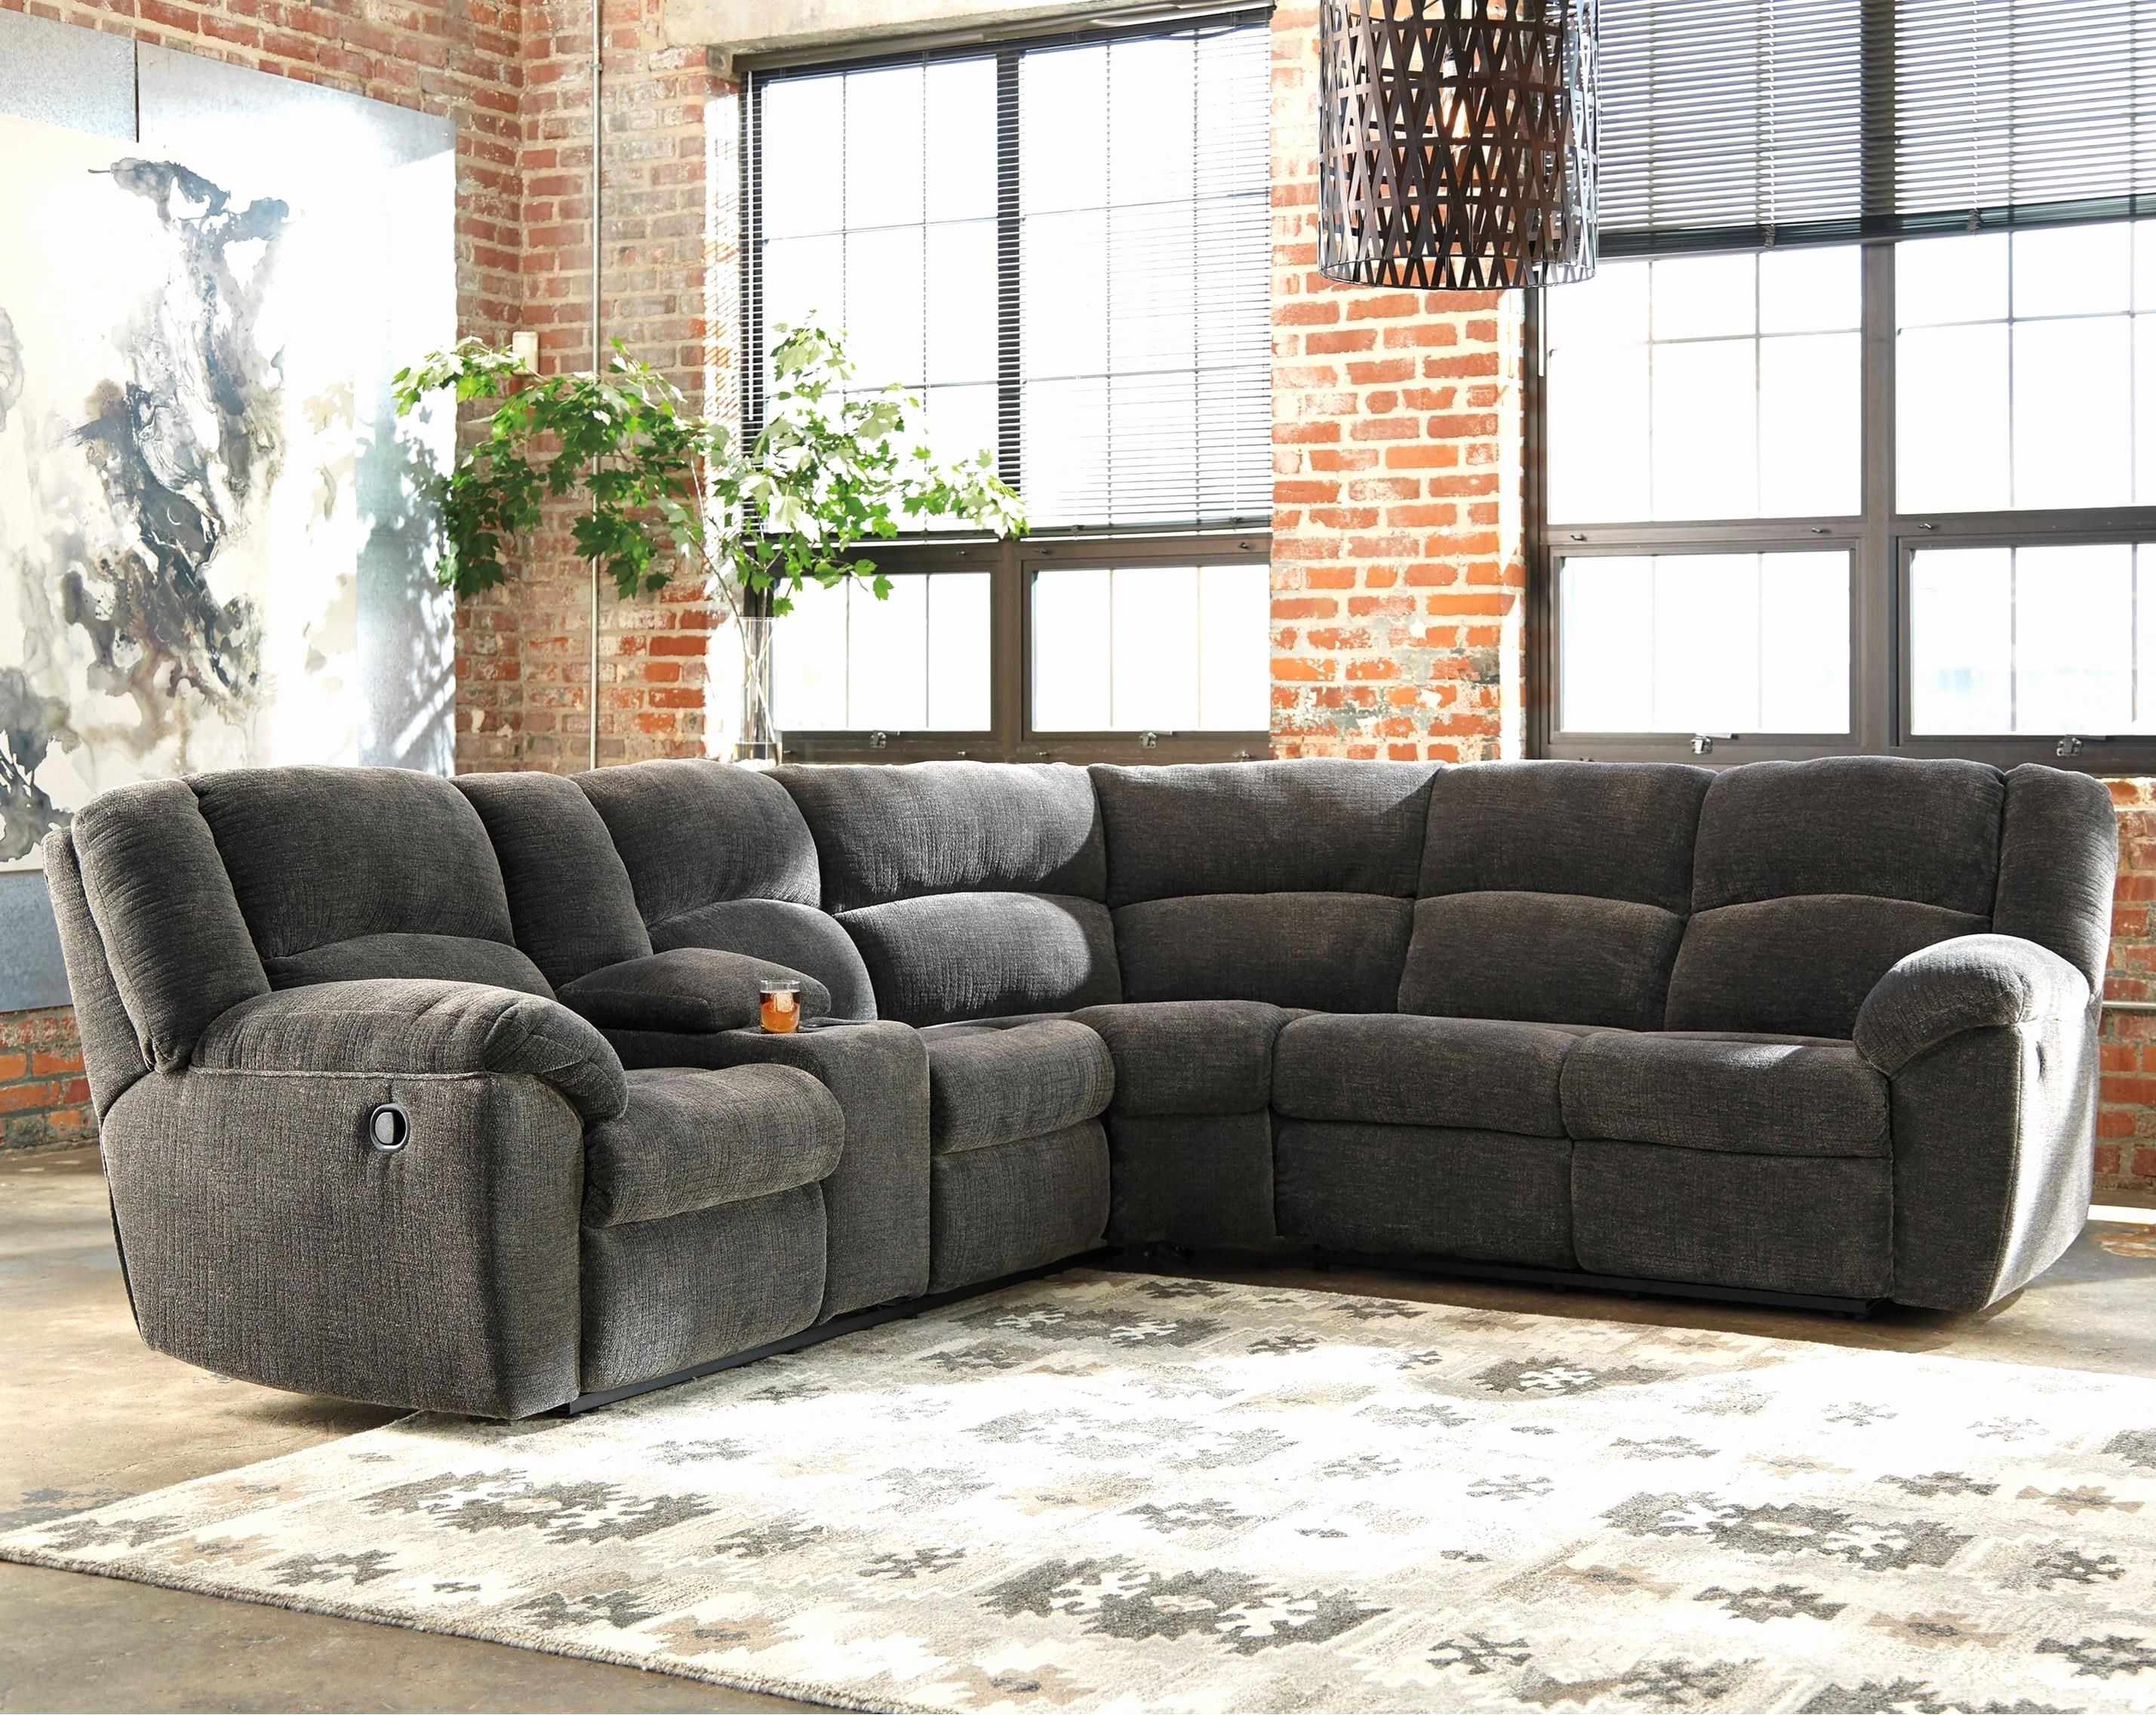 Ideas Power Reclining Sectional Sofa Pictures Benchcraft Timpson Reclining Sect Sectional Sofa With Recliner Power Reclining Sectional Sofa Reclining Sectional